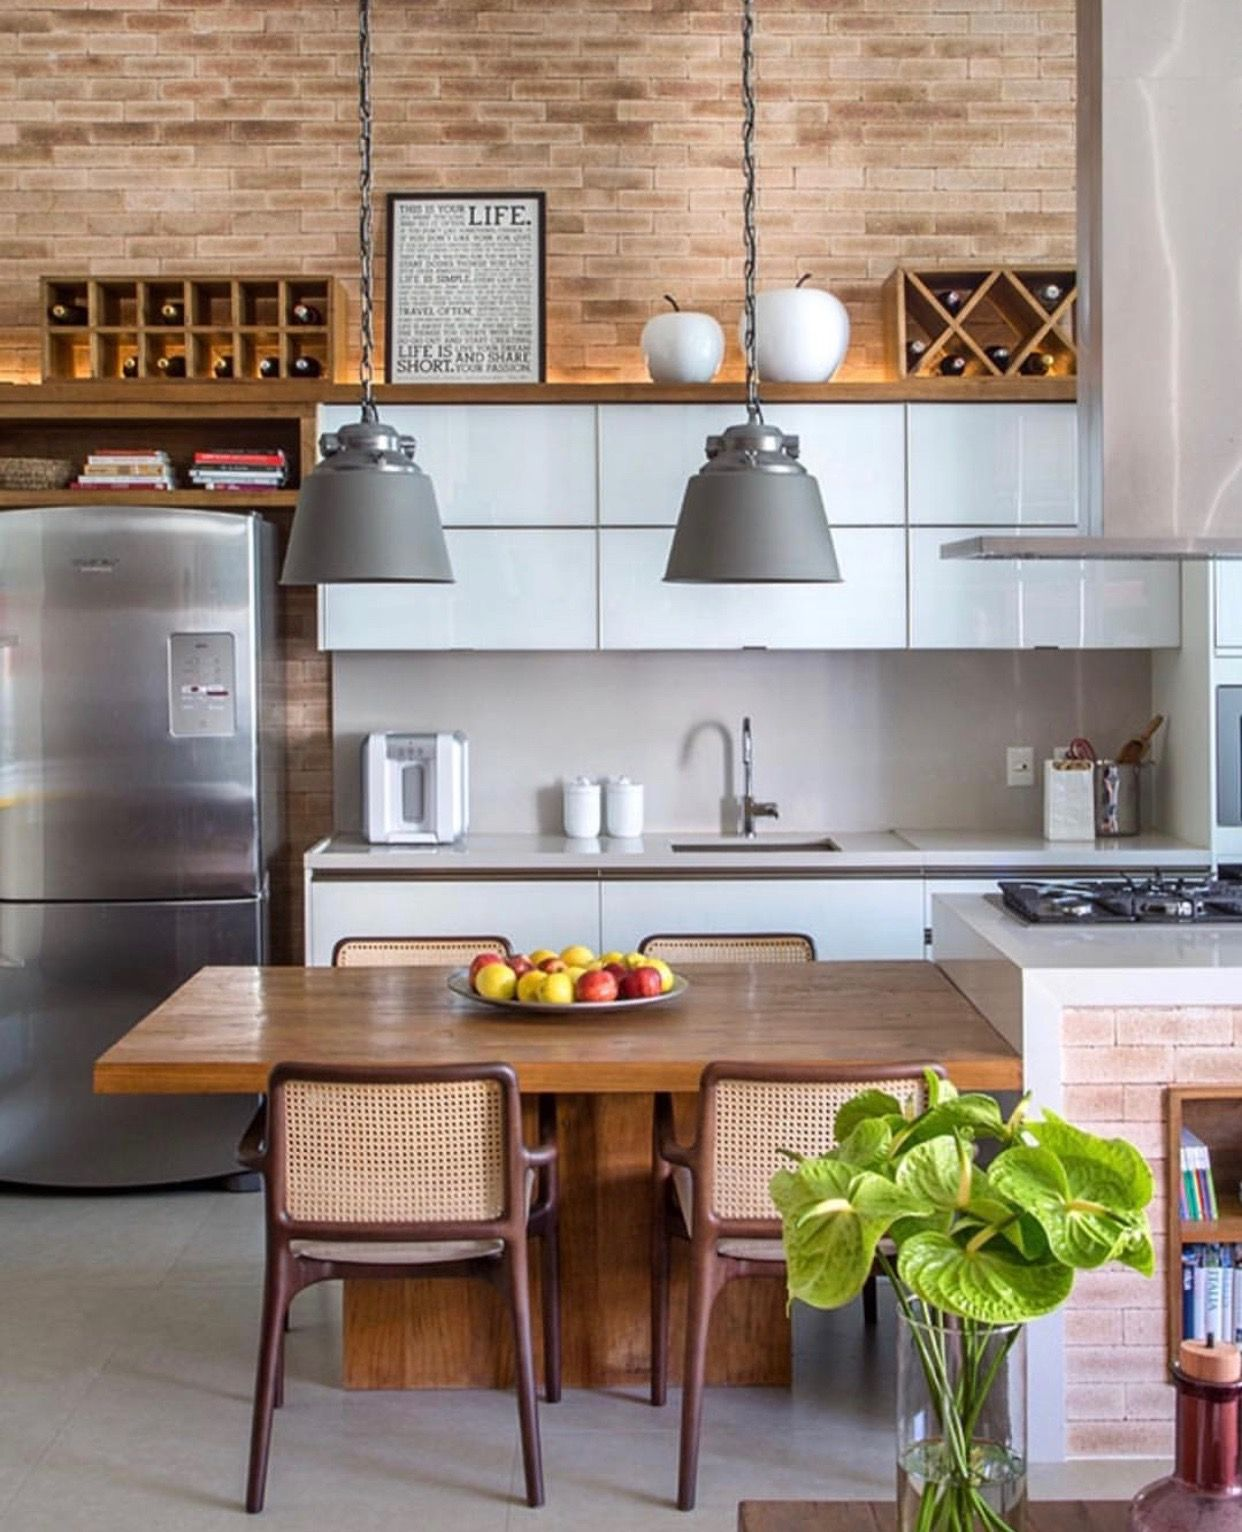 Home interior design kurs pin by magda on wnętrza  pinterest  kitchen kitchen design and